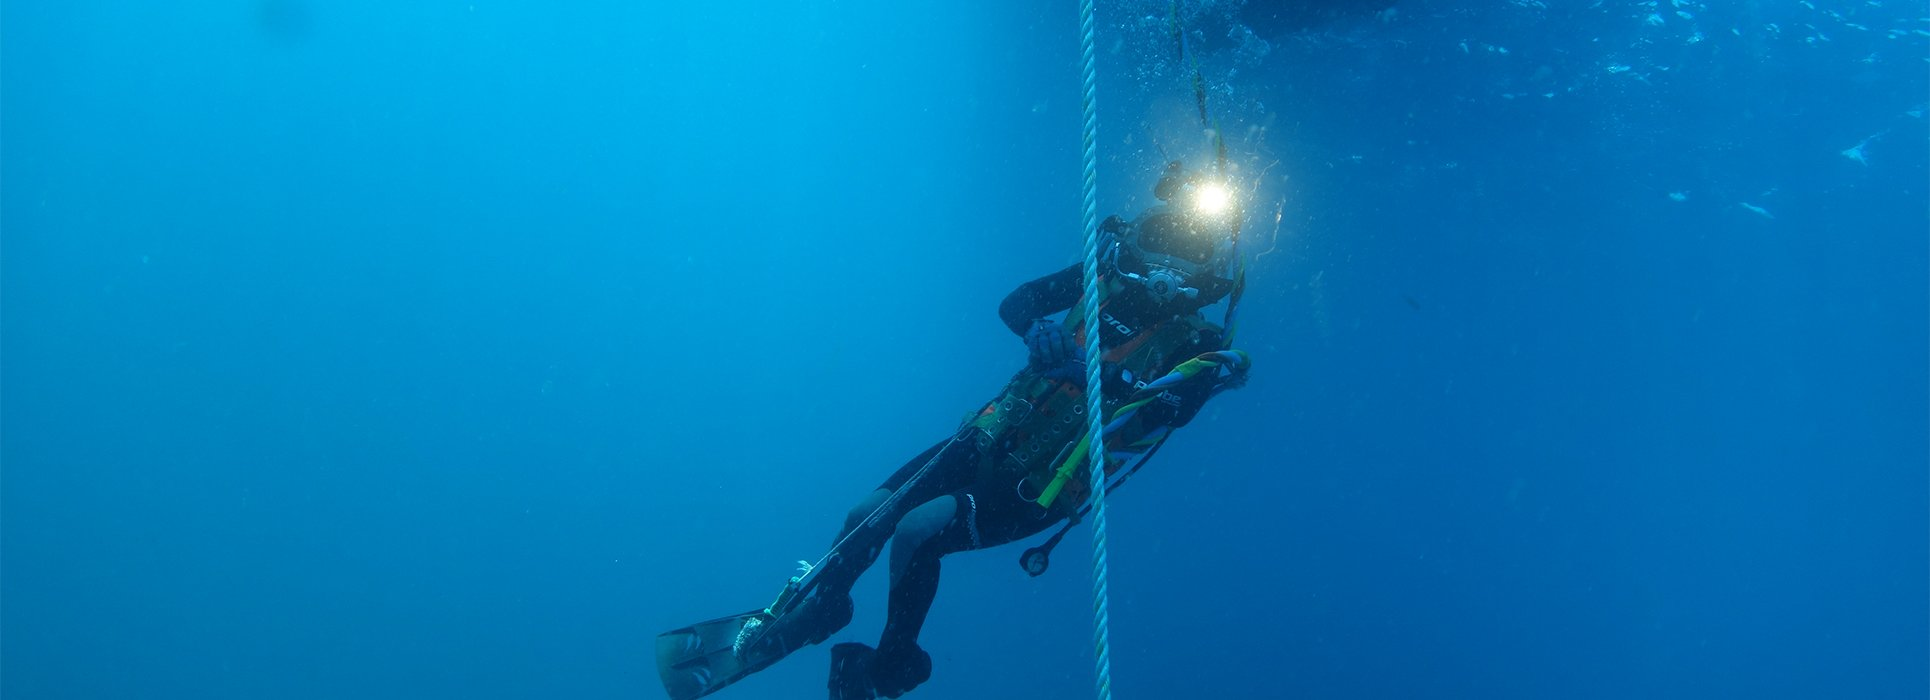 Southern Divers Underwater Construction